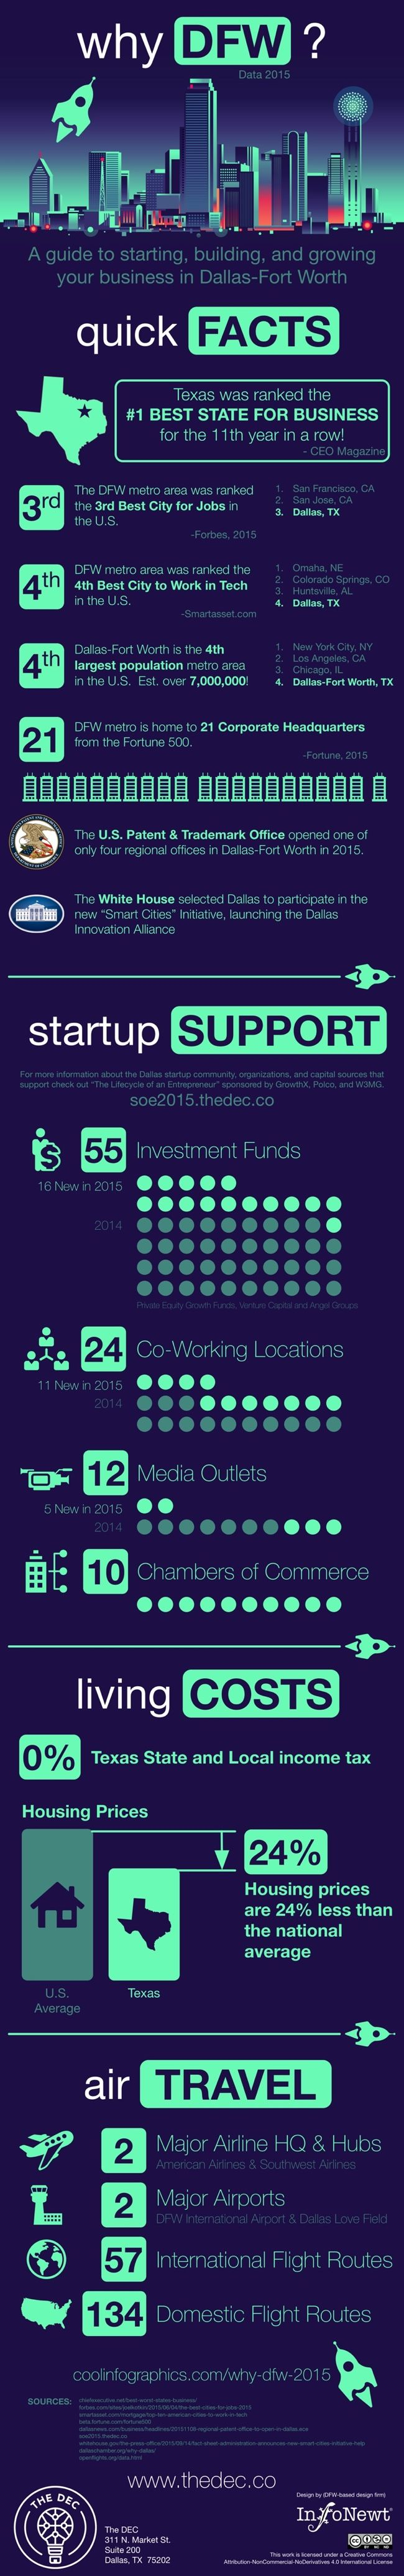 Why DFW? 2015 - Blog About Infographics and Data Visualization - Cool Infographics